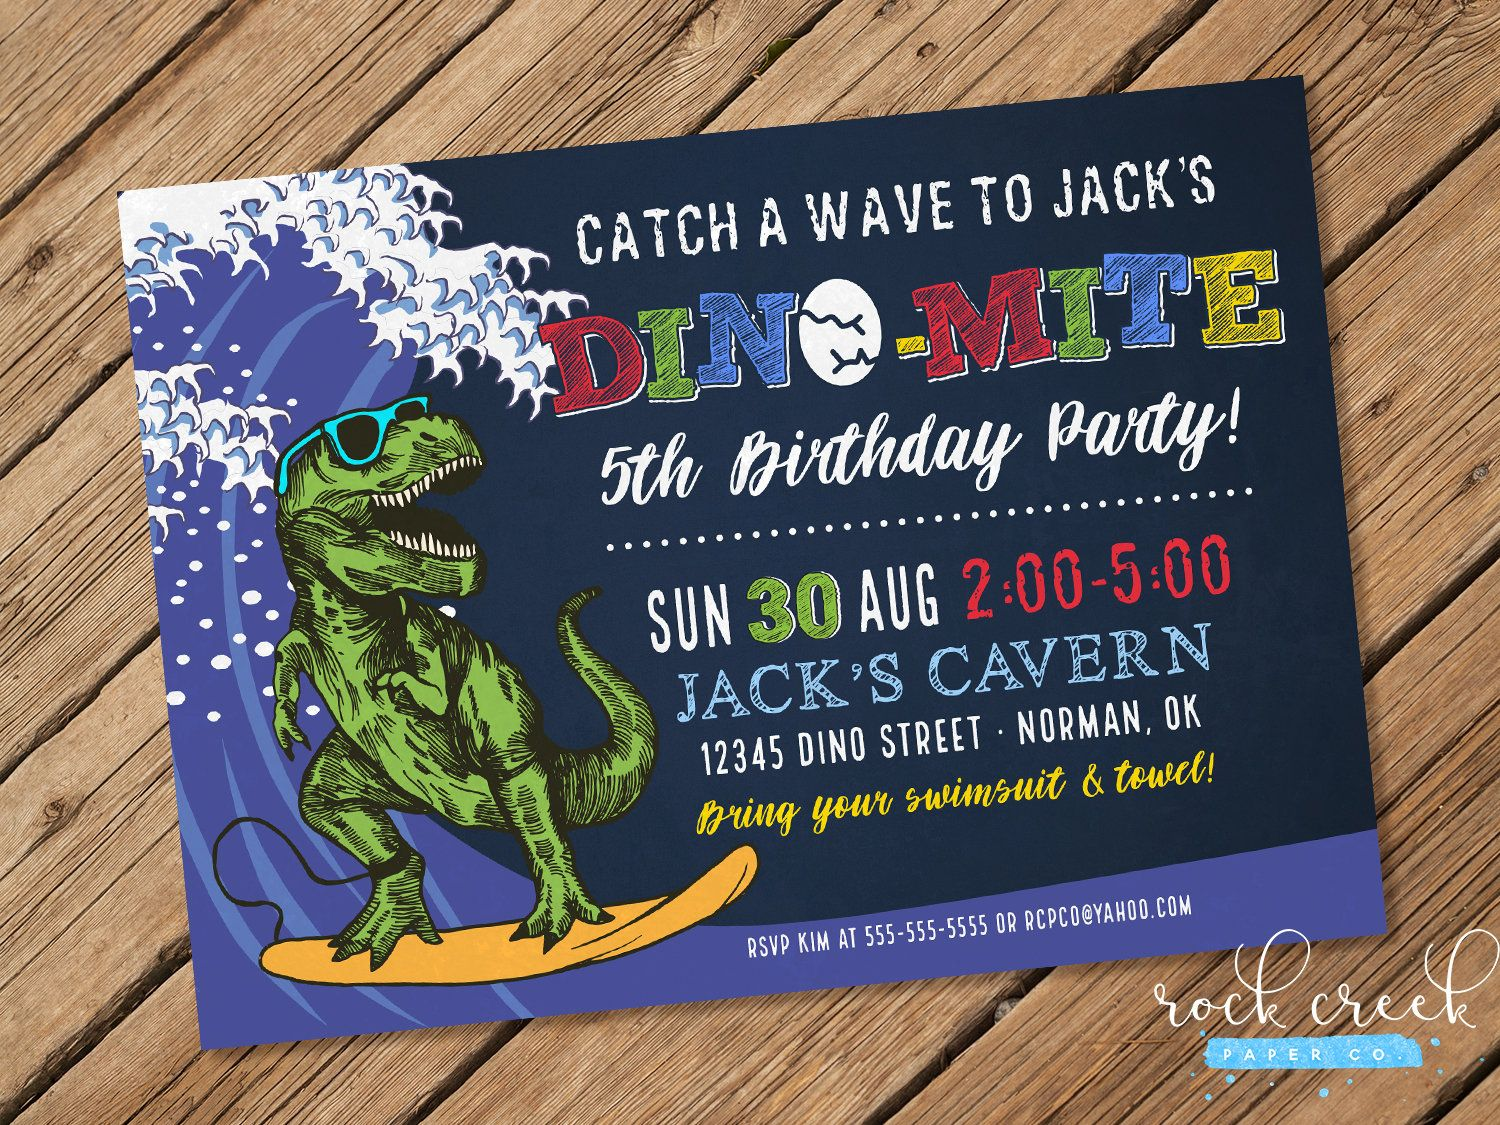 Surfing dinosaur invitation dinosaur birthday invitation beach surfing dinosaur invitation dinosaur birthday invitation beach birthday party pool party invitation printable birthday party invitation stopboris Images